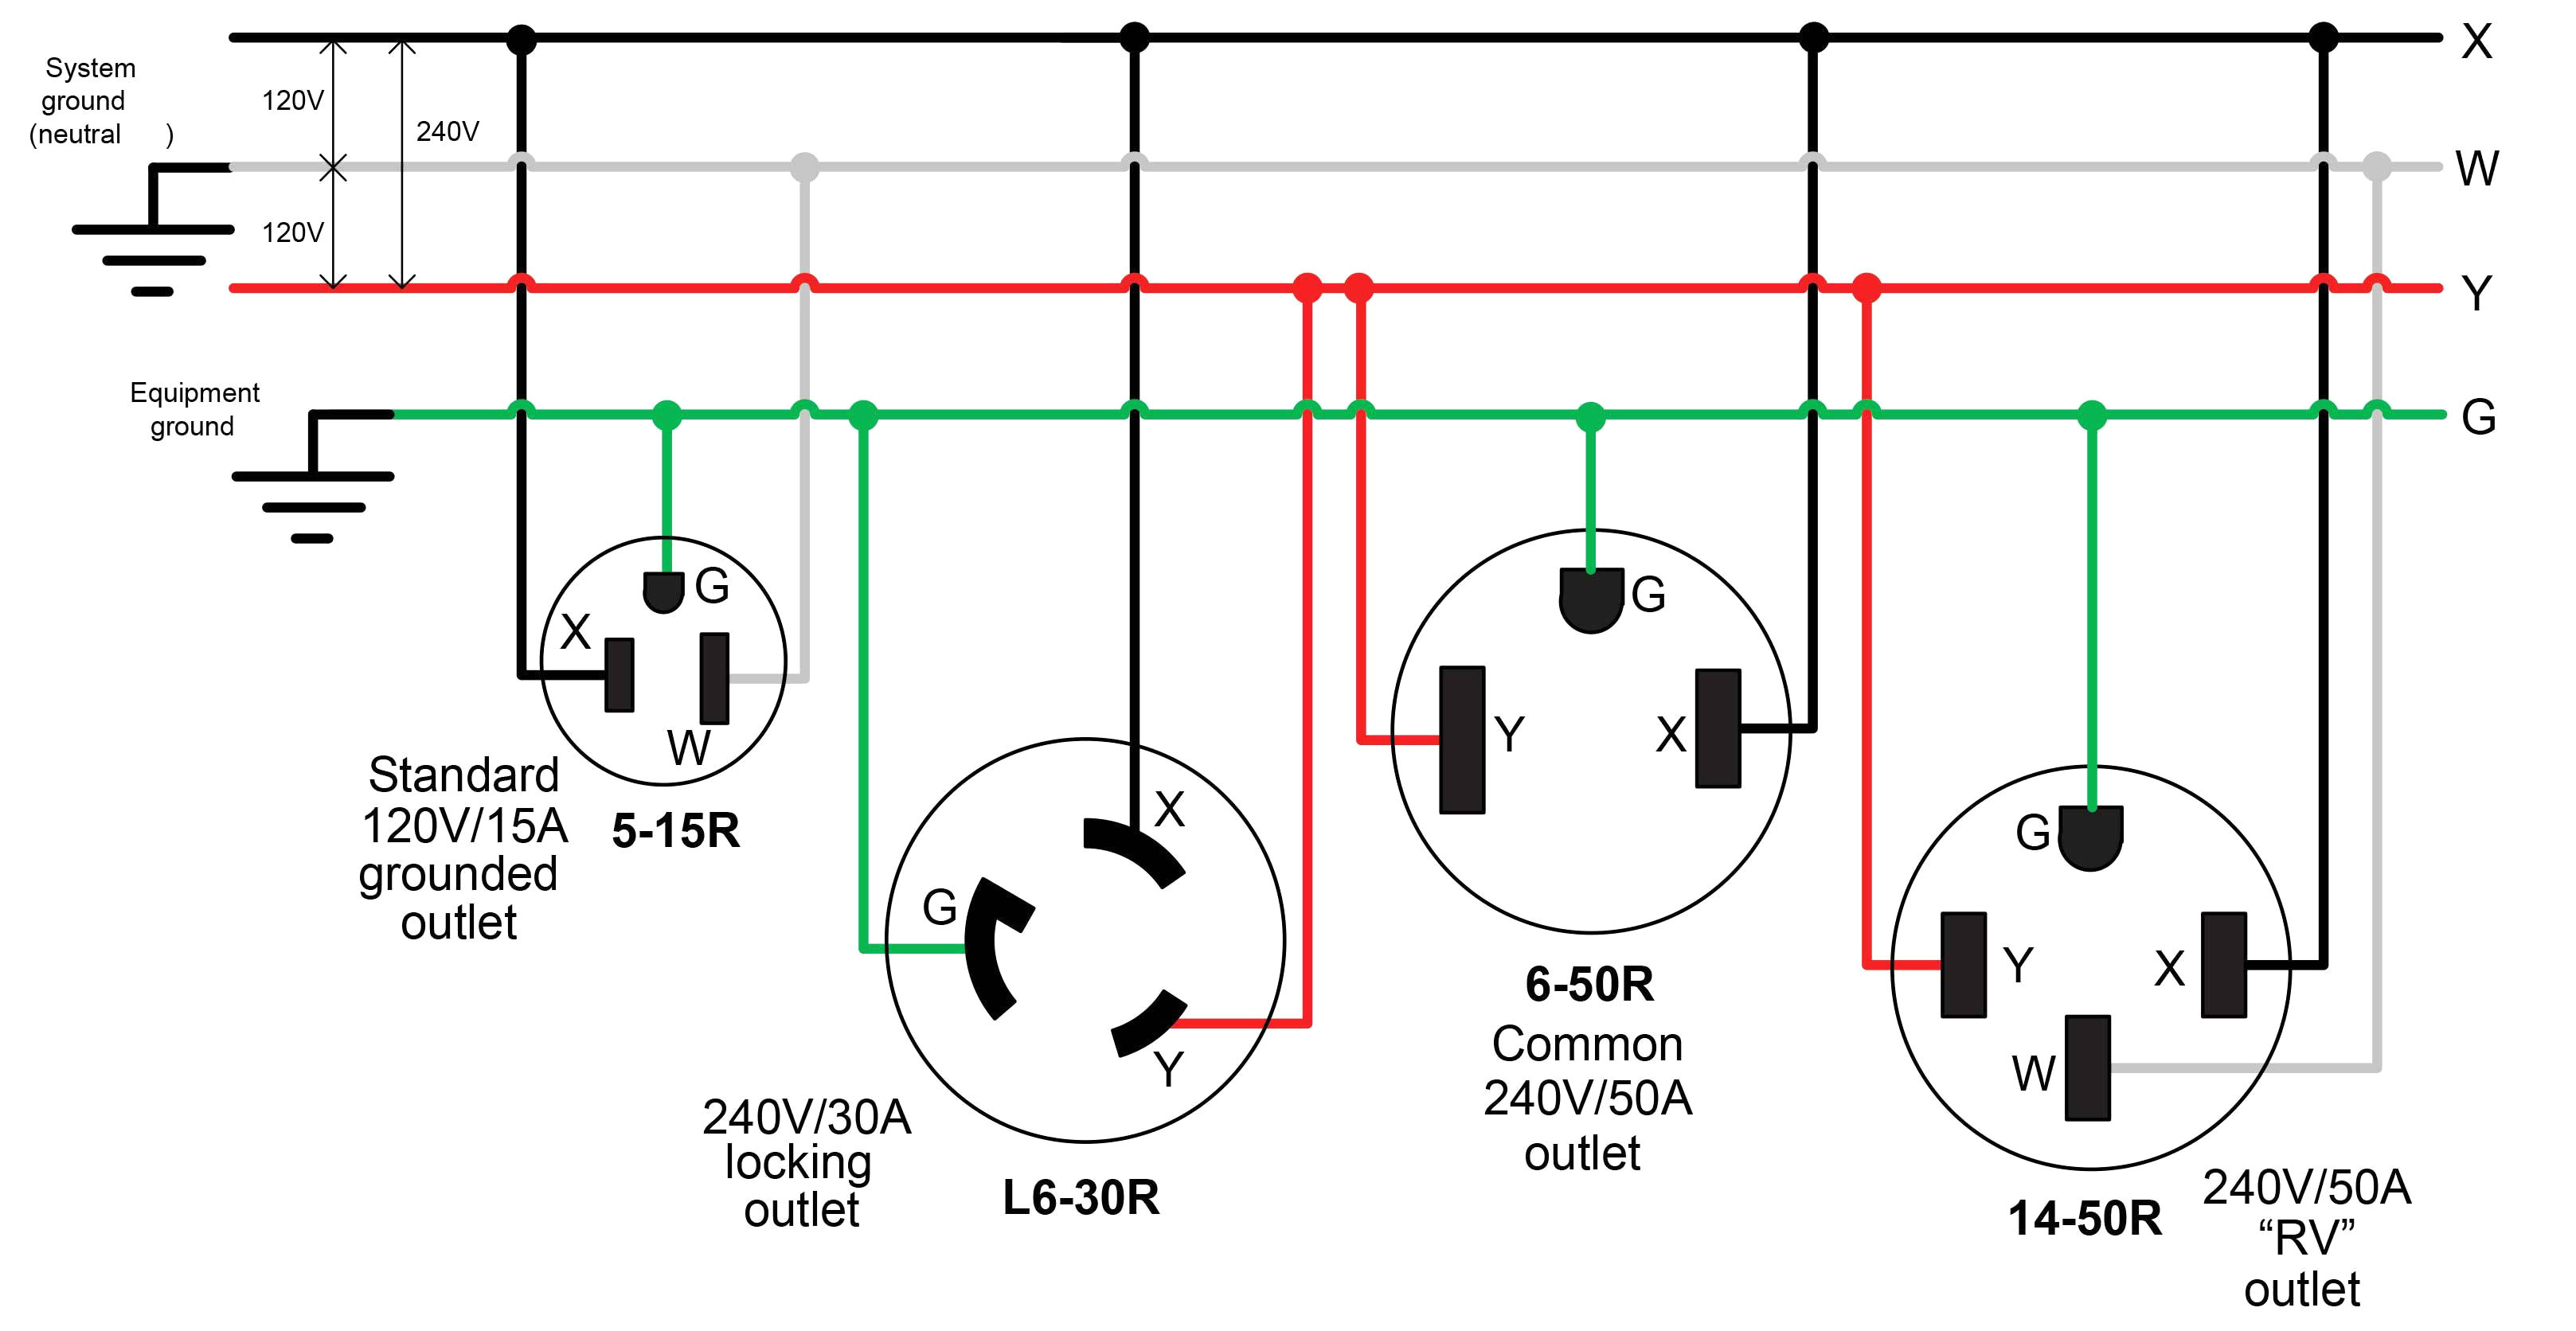 20 Amp Plug Wiring Diagram Collection | Wiring Diagram Sample Wiring Amp Relay For on